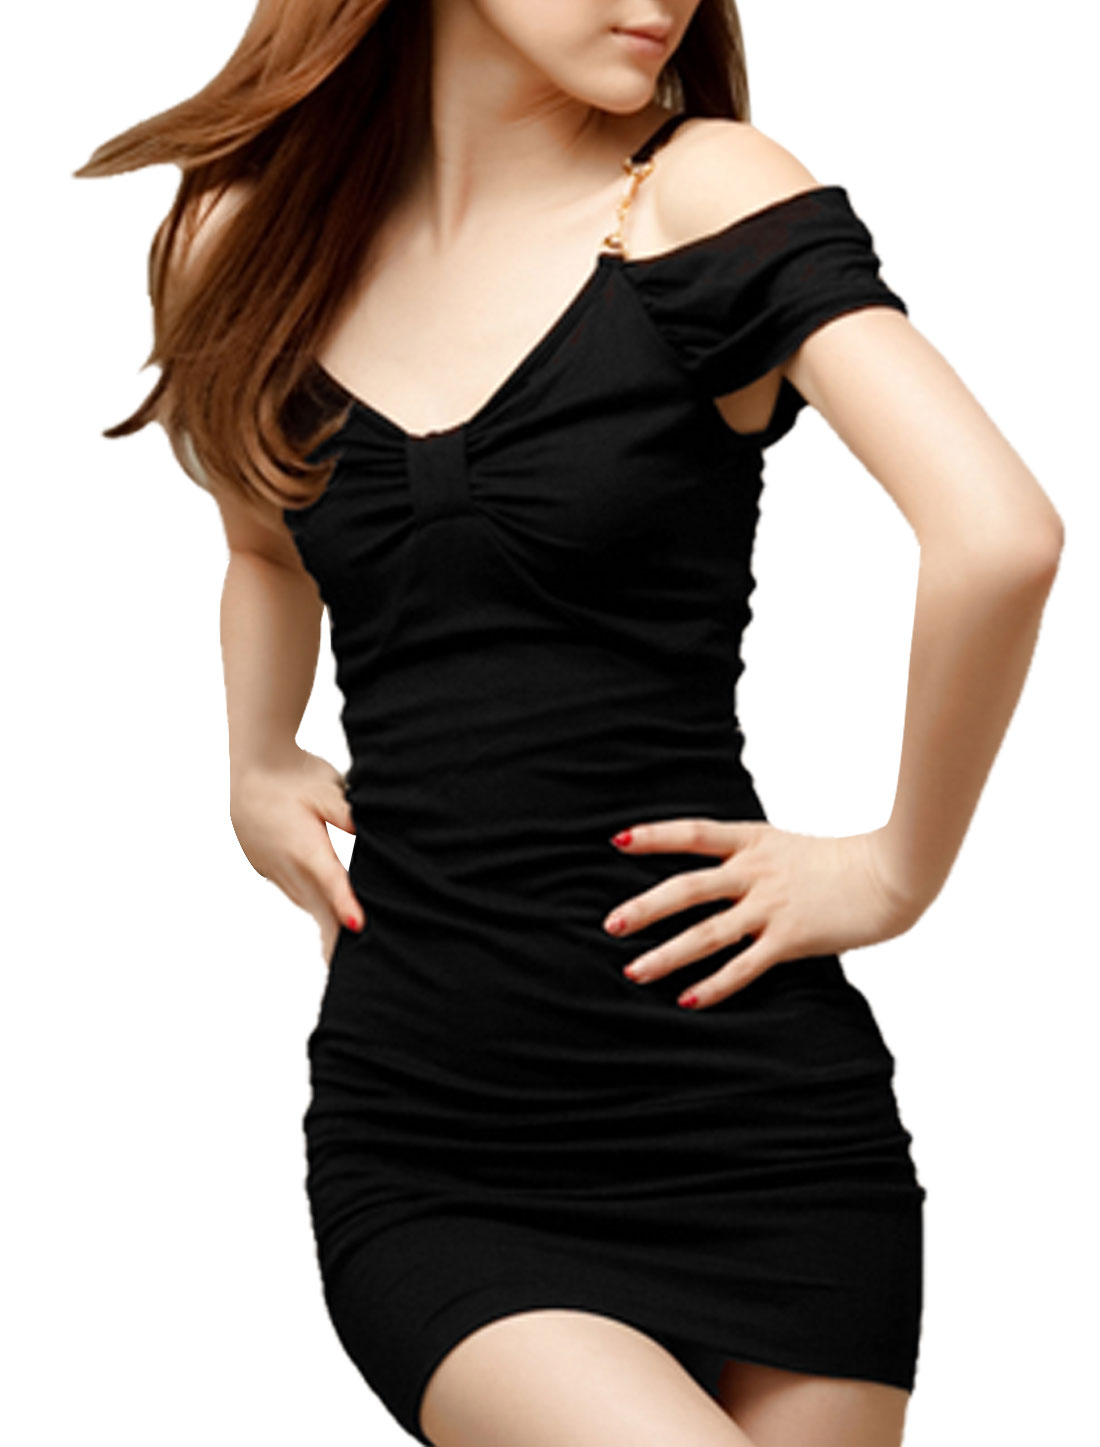 Pullover Stretchy Skinnt Pure Black Bodycon Mini Dress for Lady M